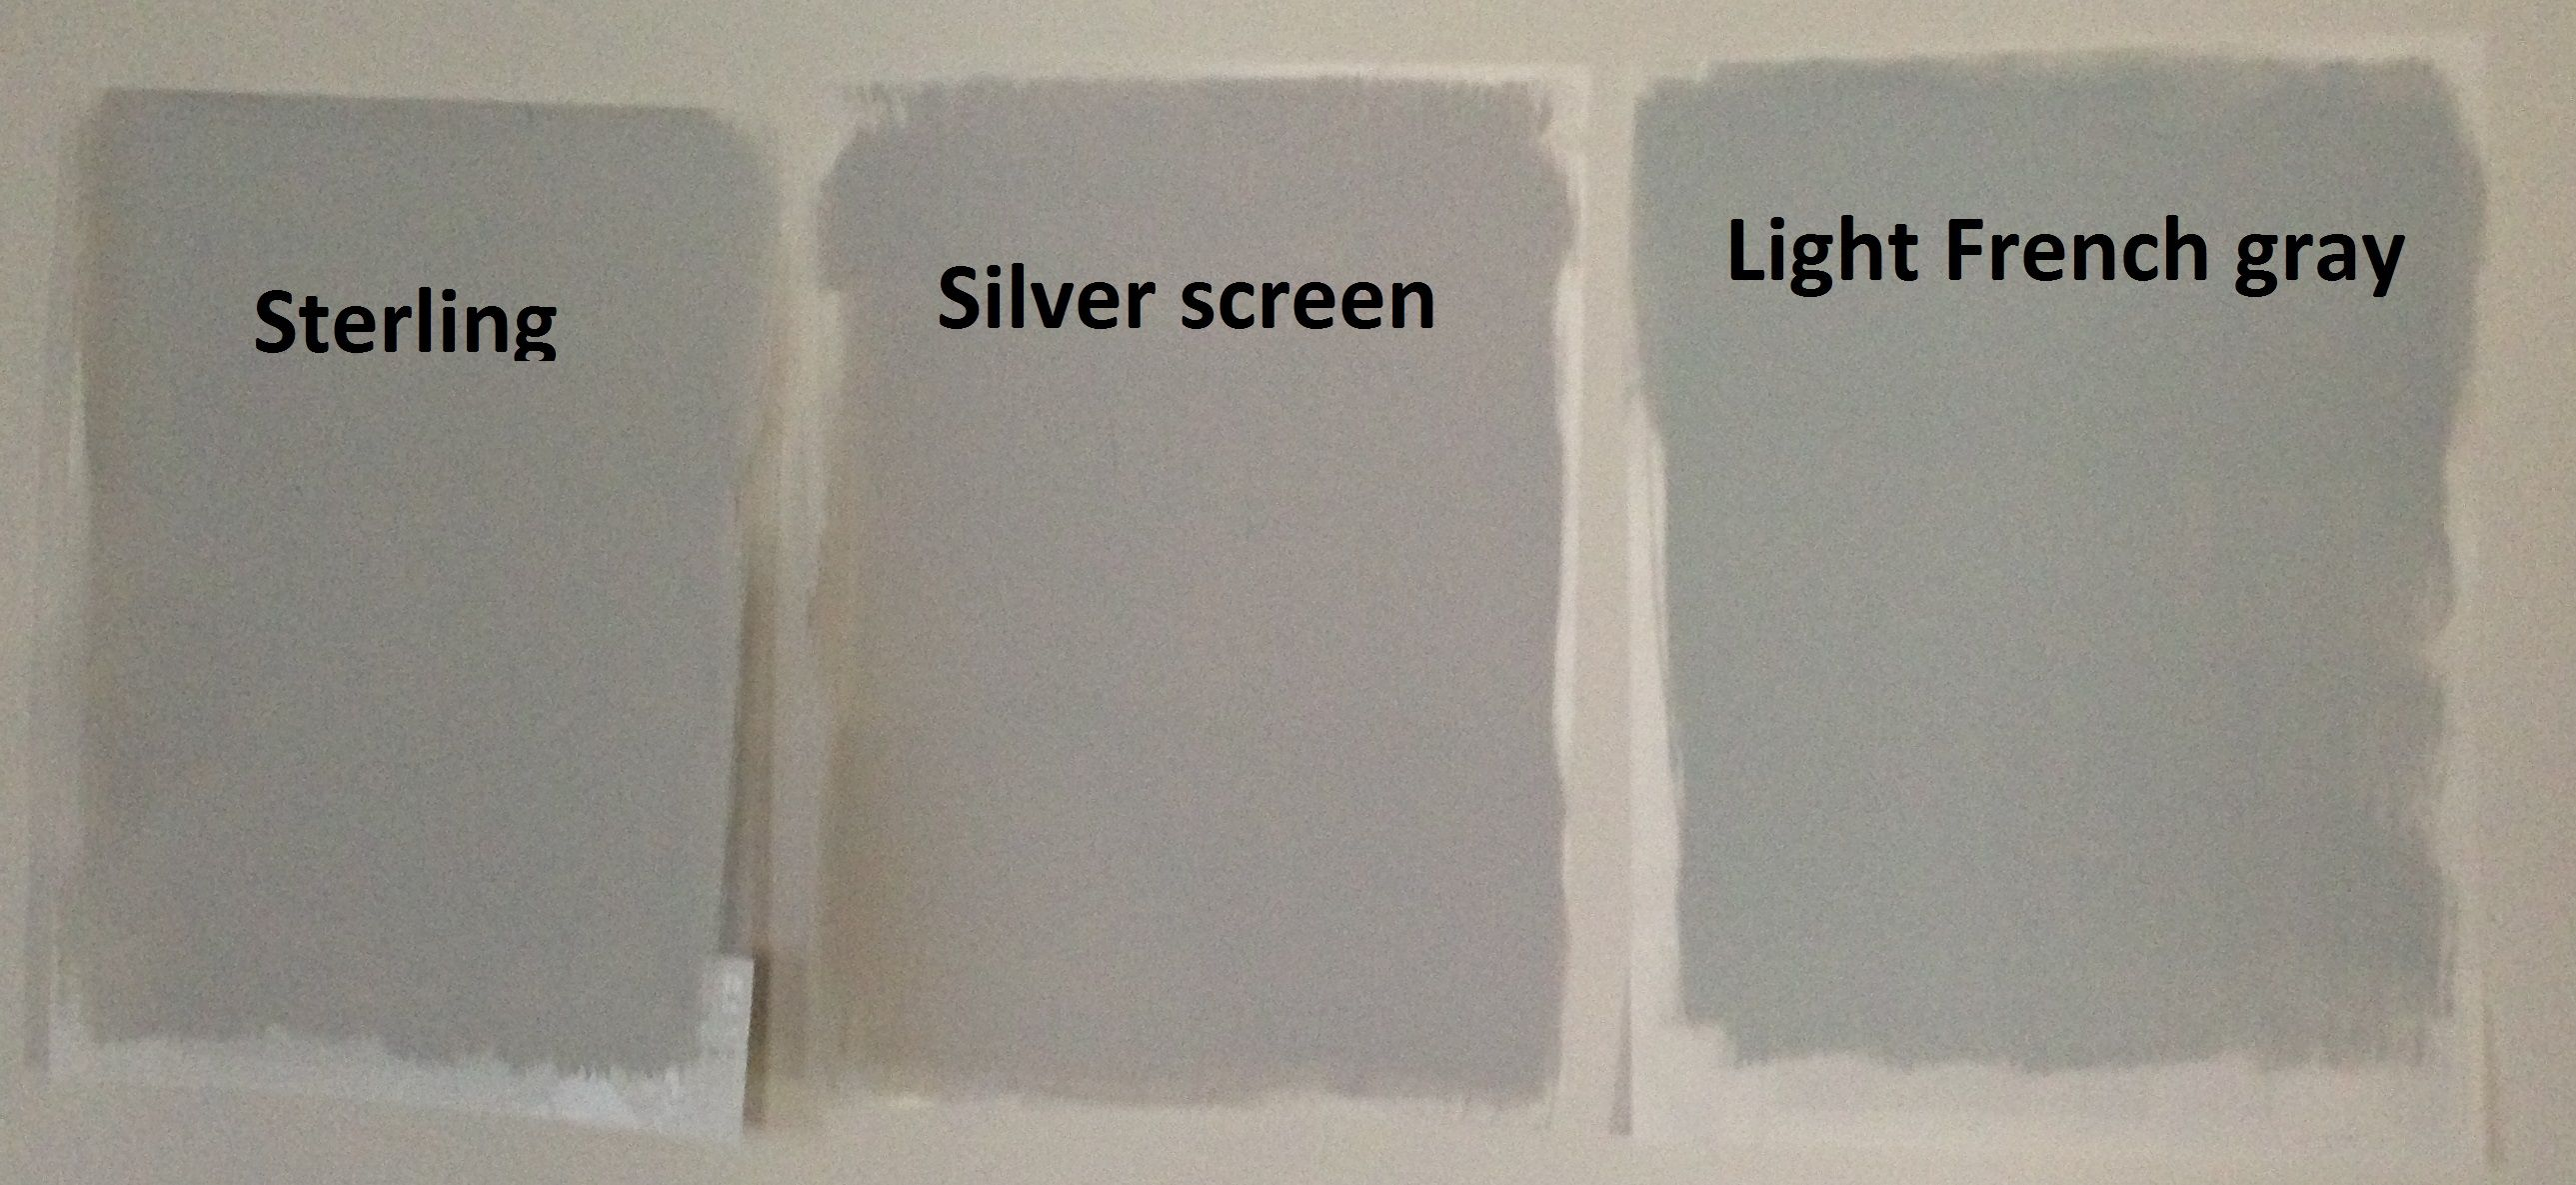 Behr Light Gray Paints Sterling